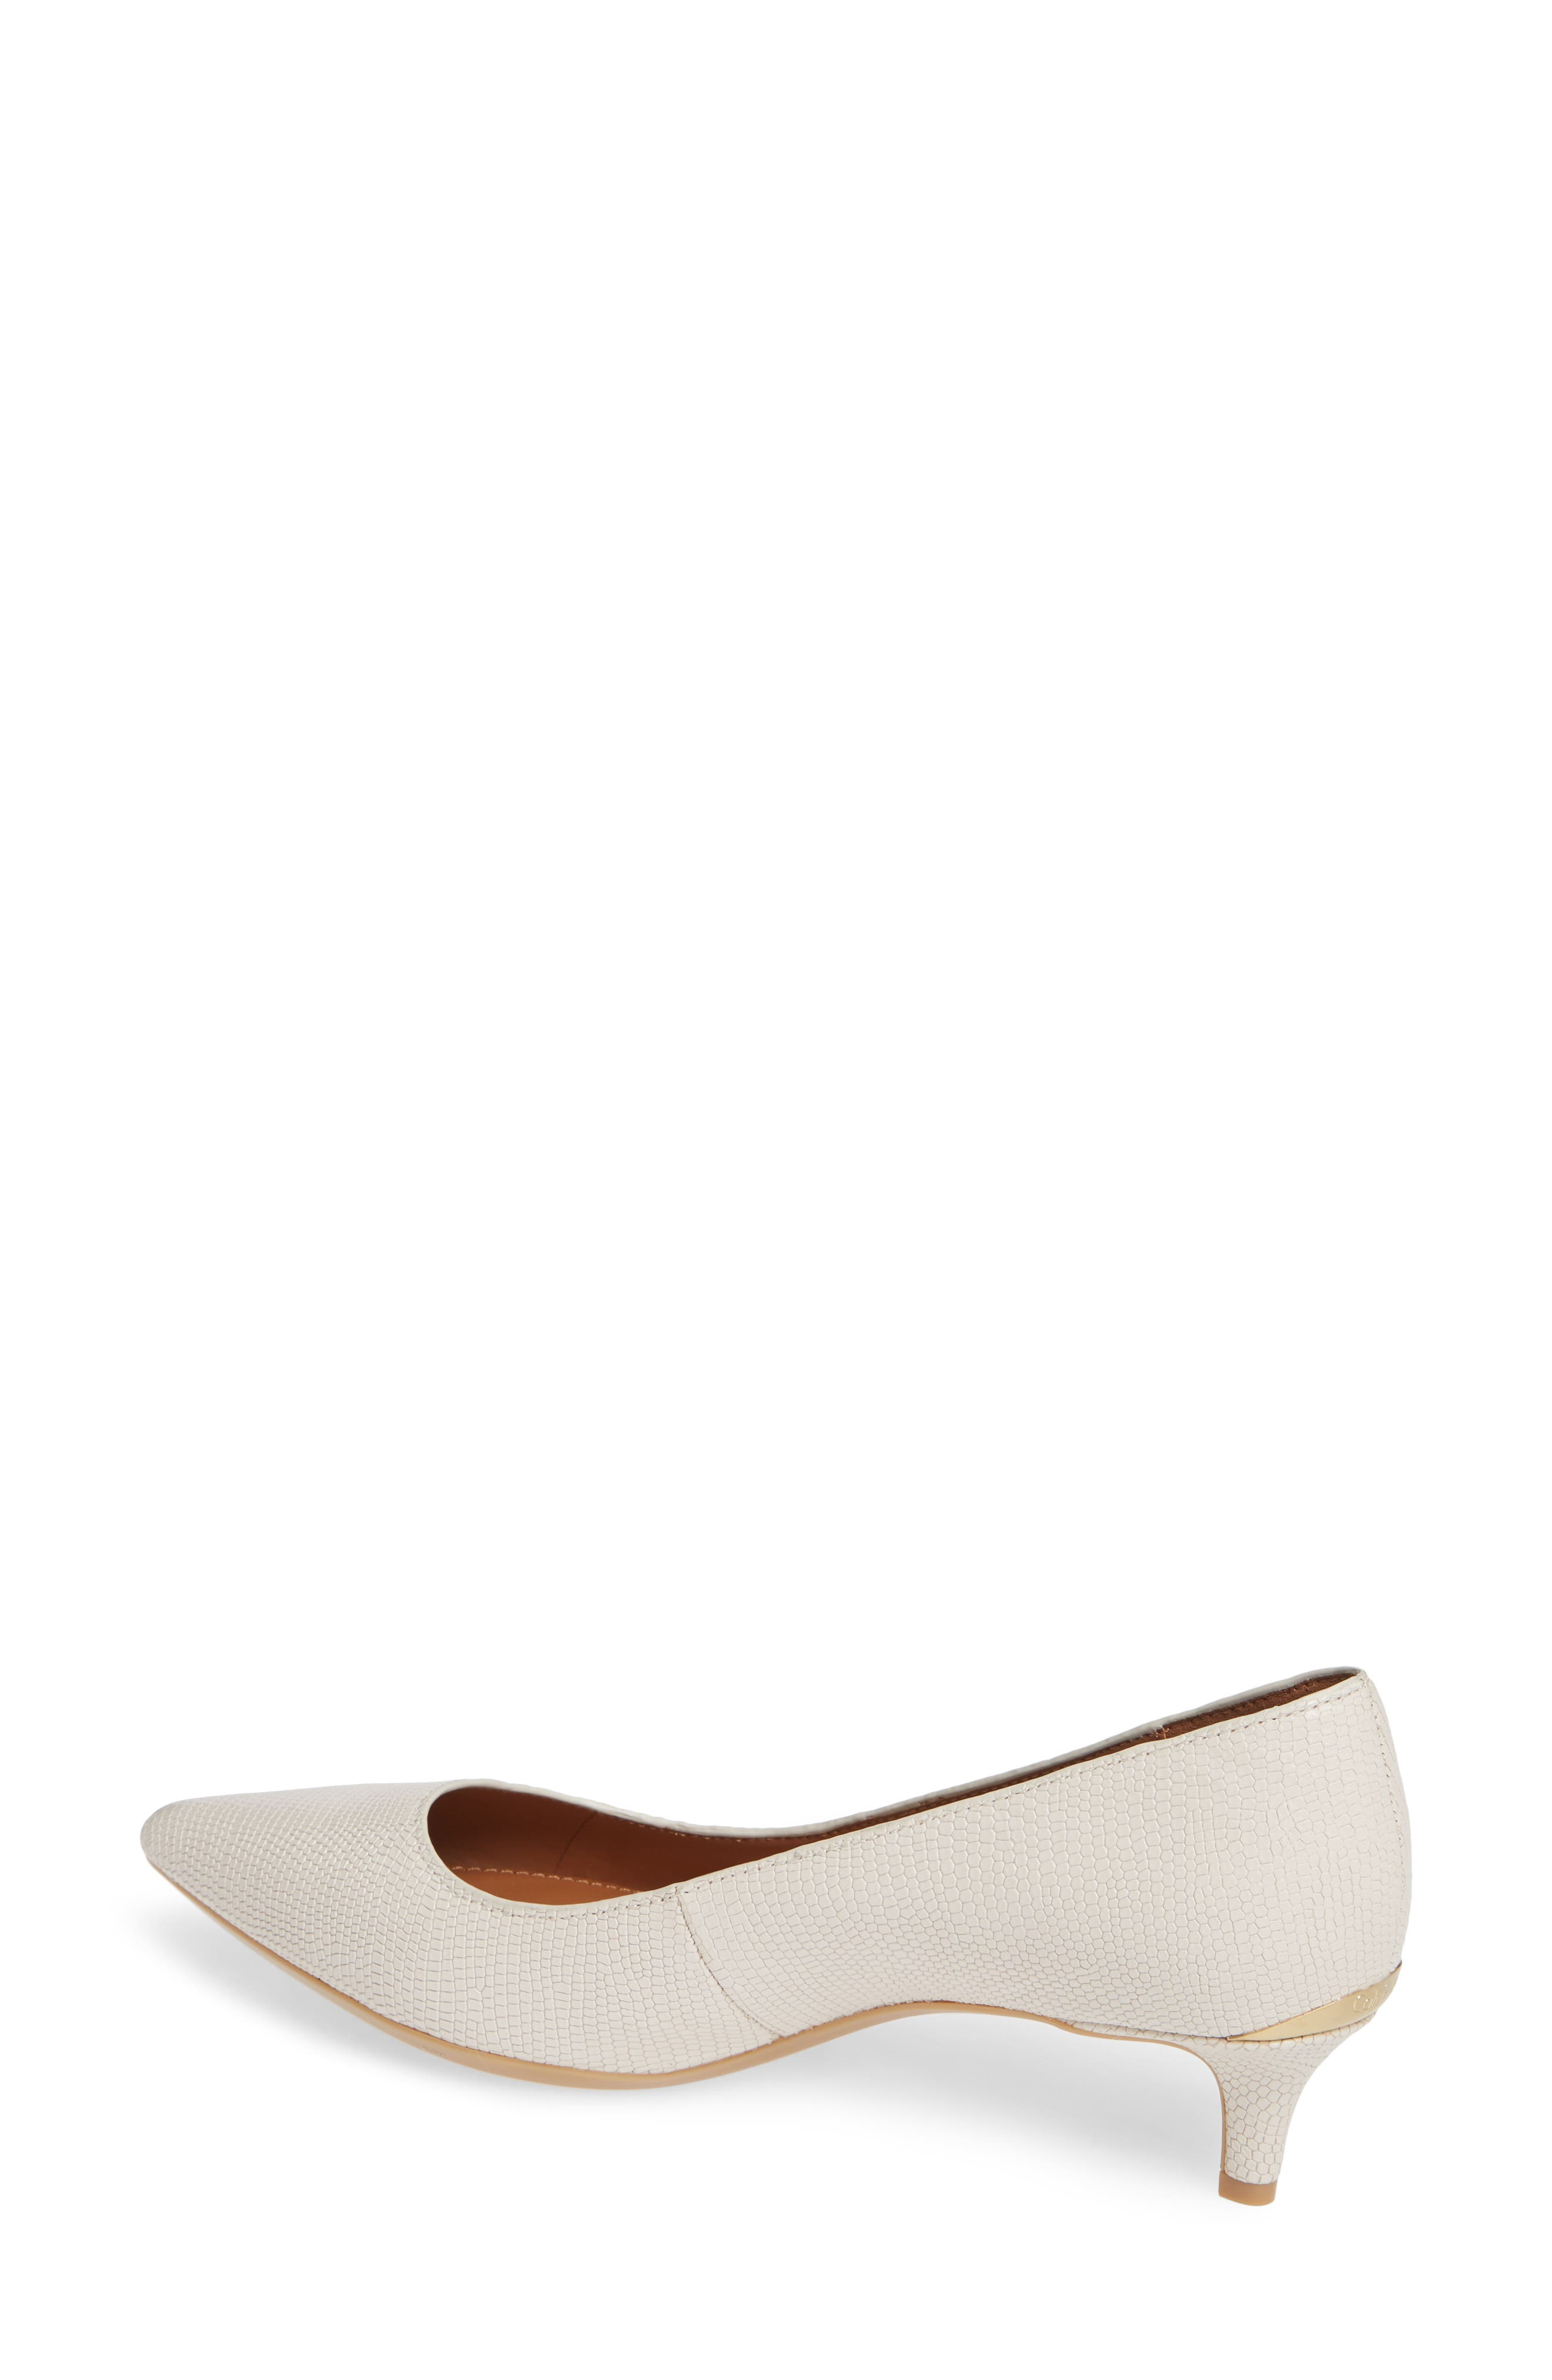 Gabrianna Pump,                             Alternate thumbnail 2, color,                             SOFT WHITE LEATHER